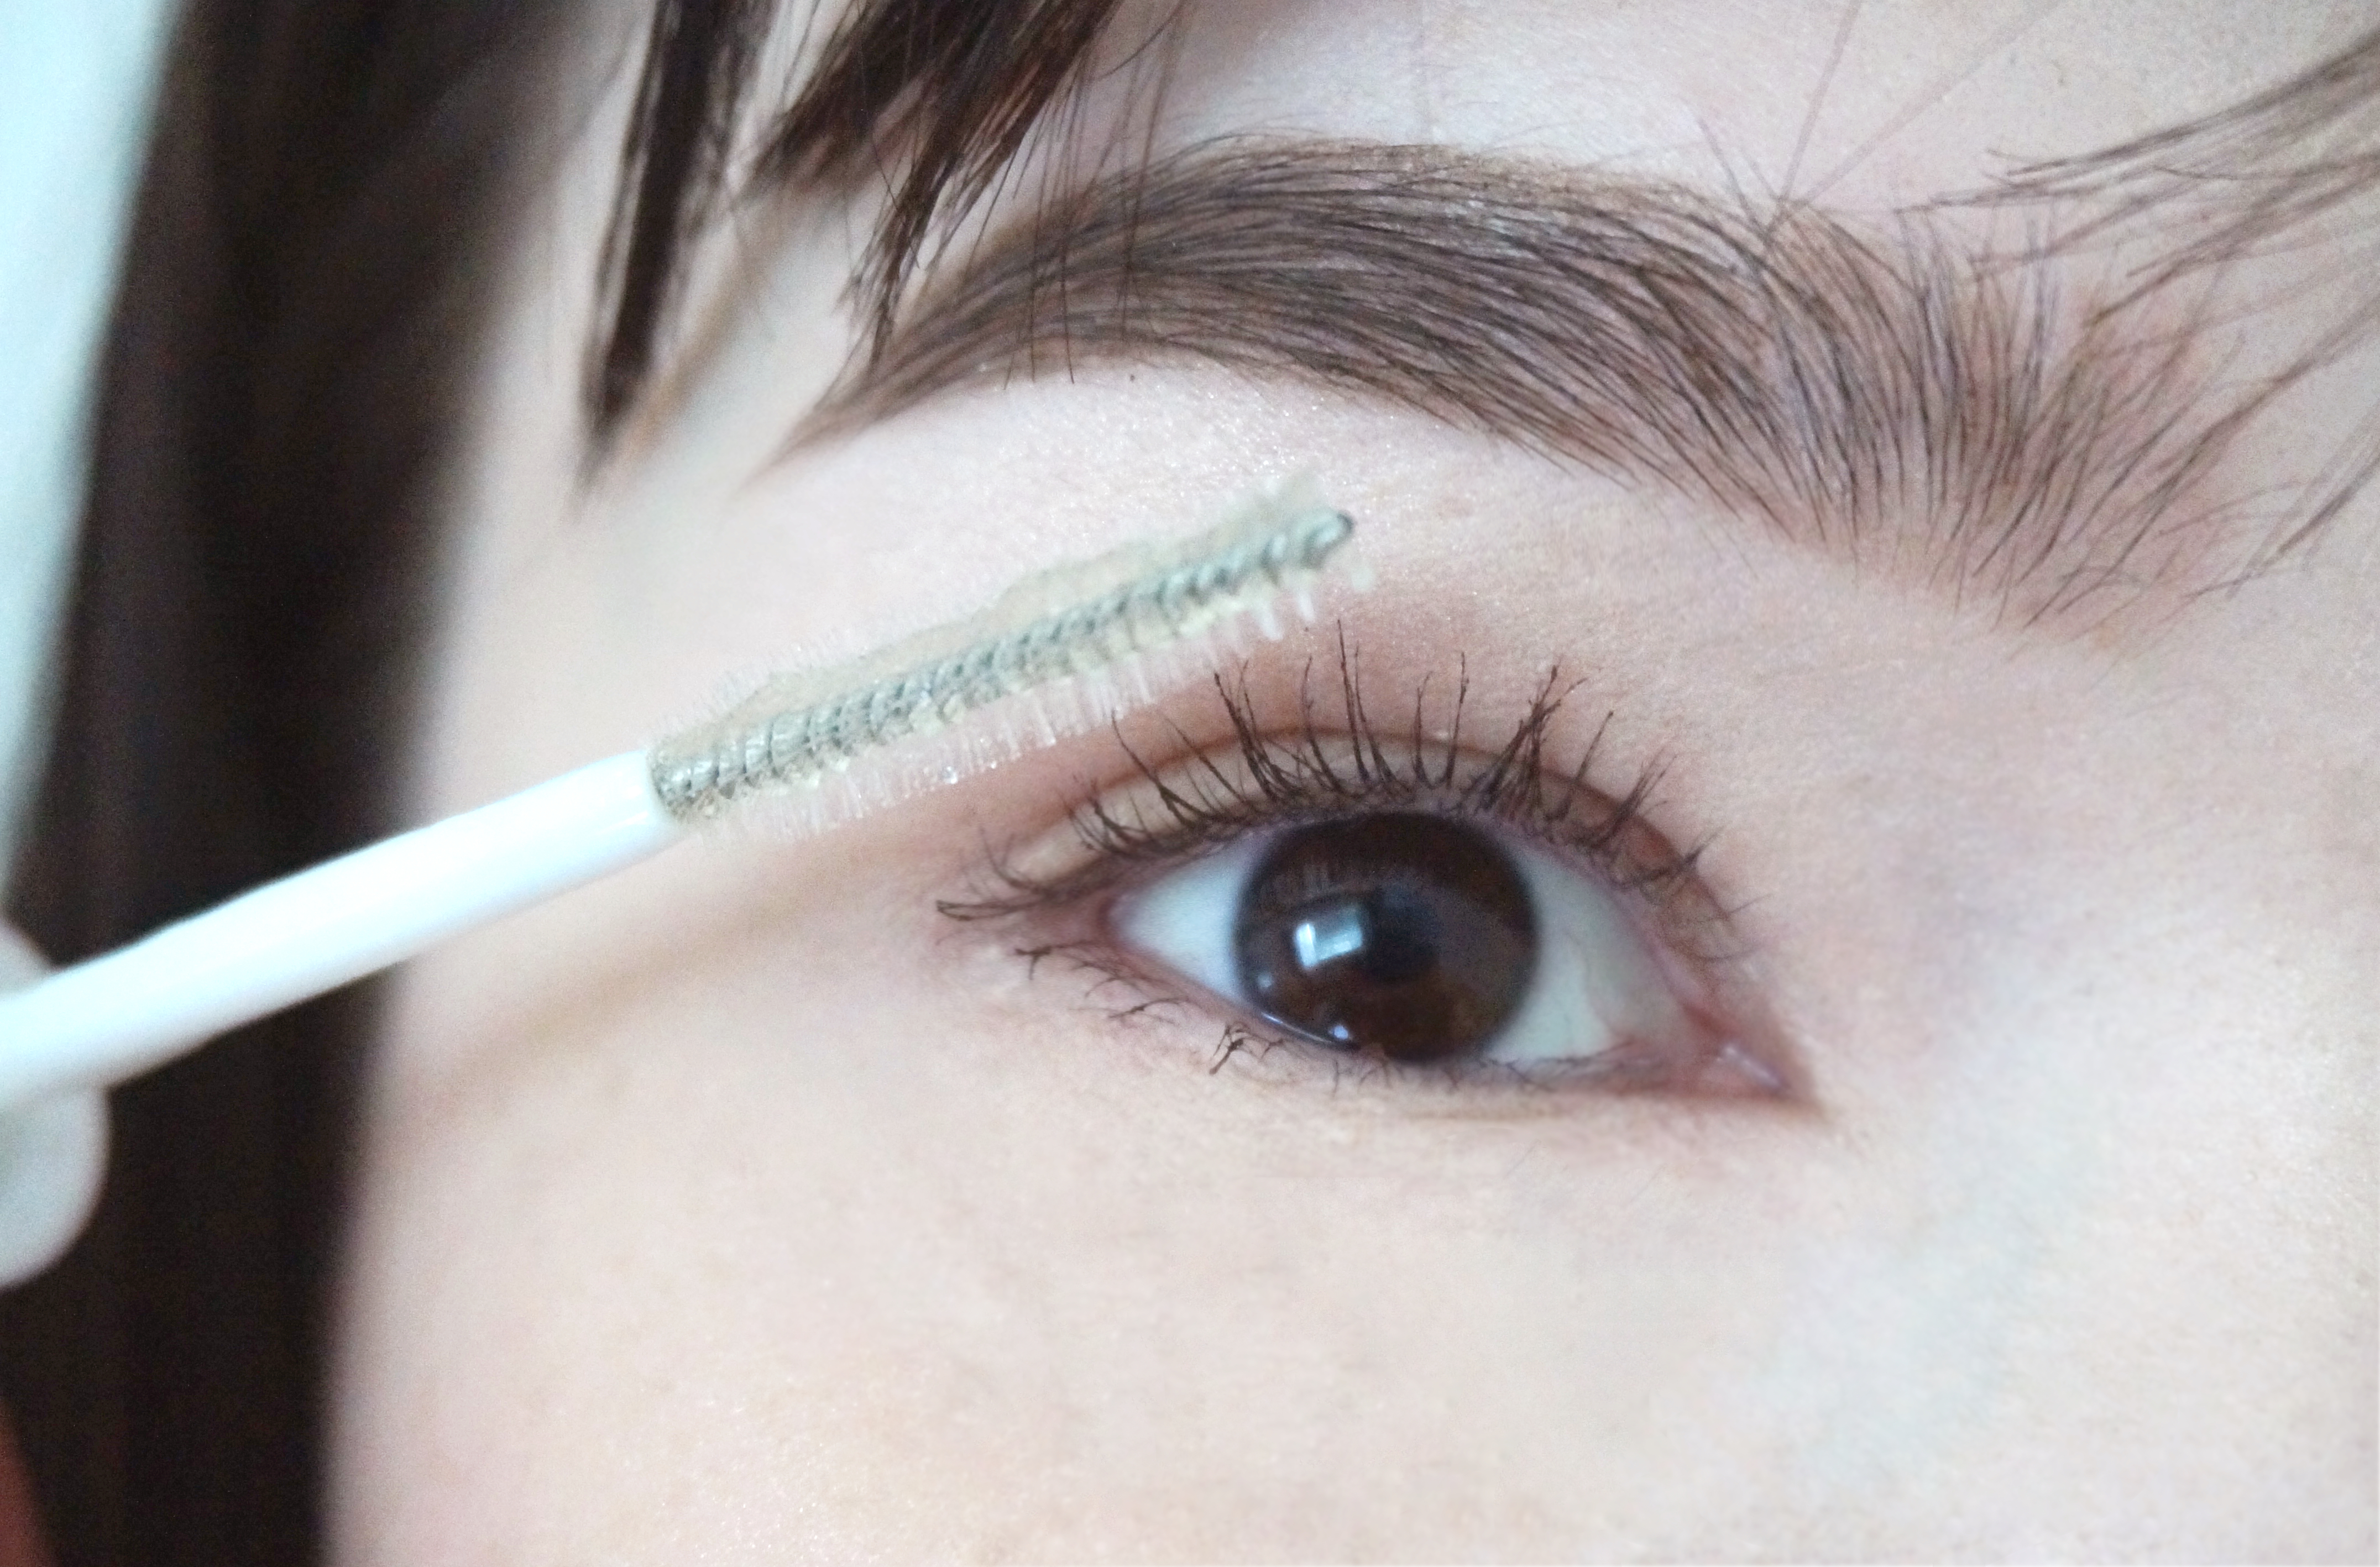 457ceed6ceb taeheedaily: Etude House My Lash Serum - a review and a look into ...